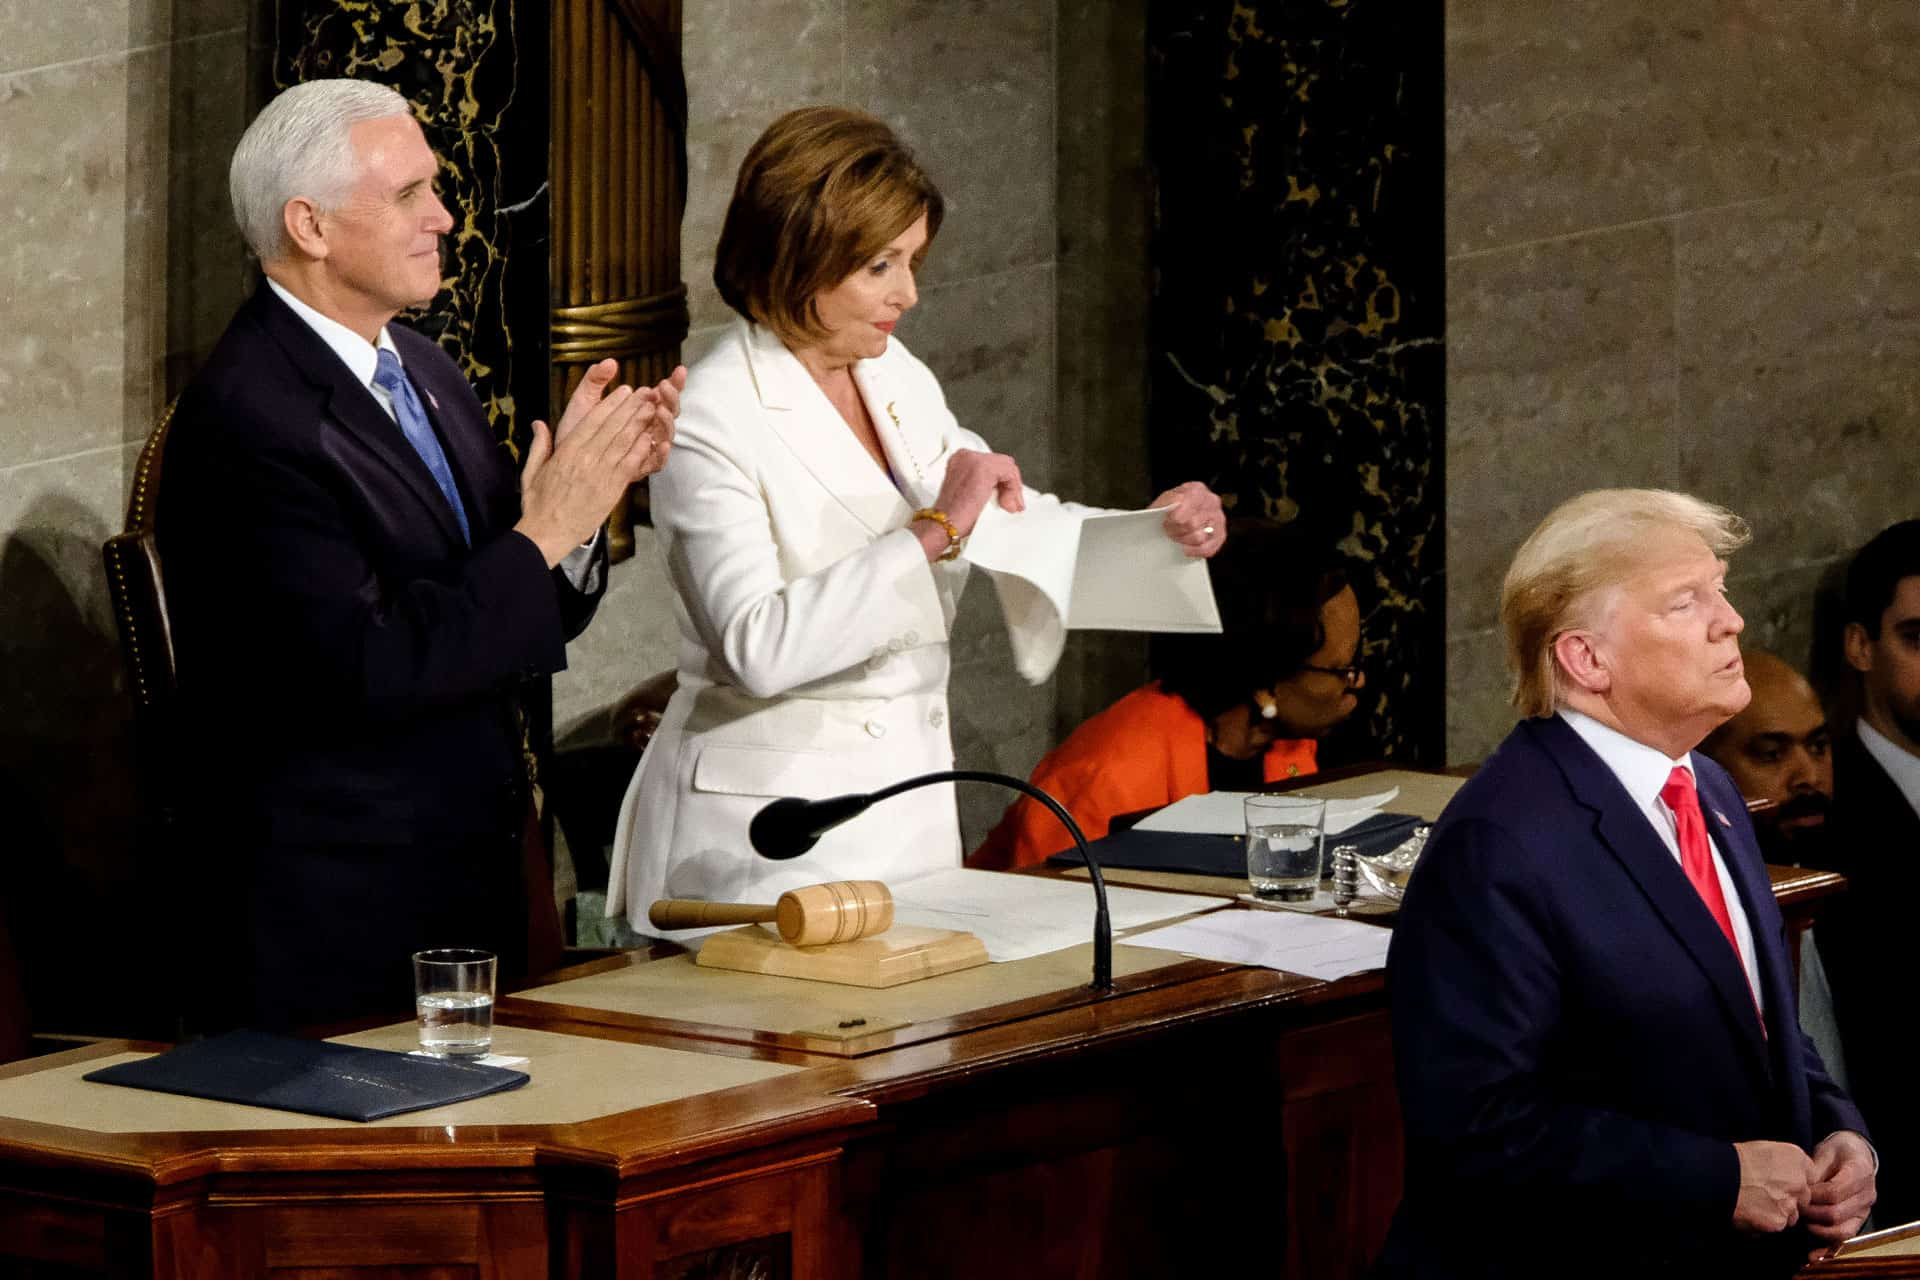 nancy-pelosi-donald-trump-discurso